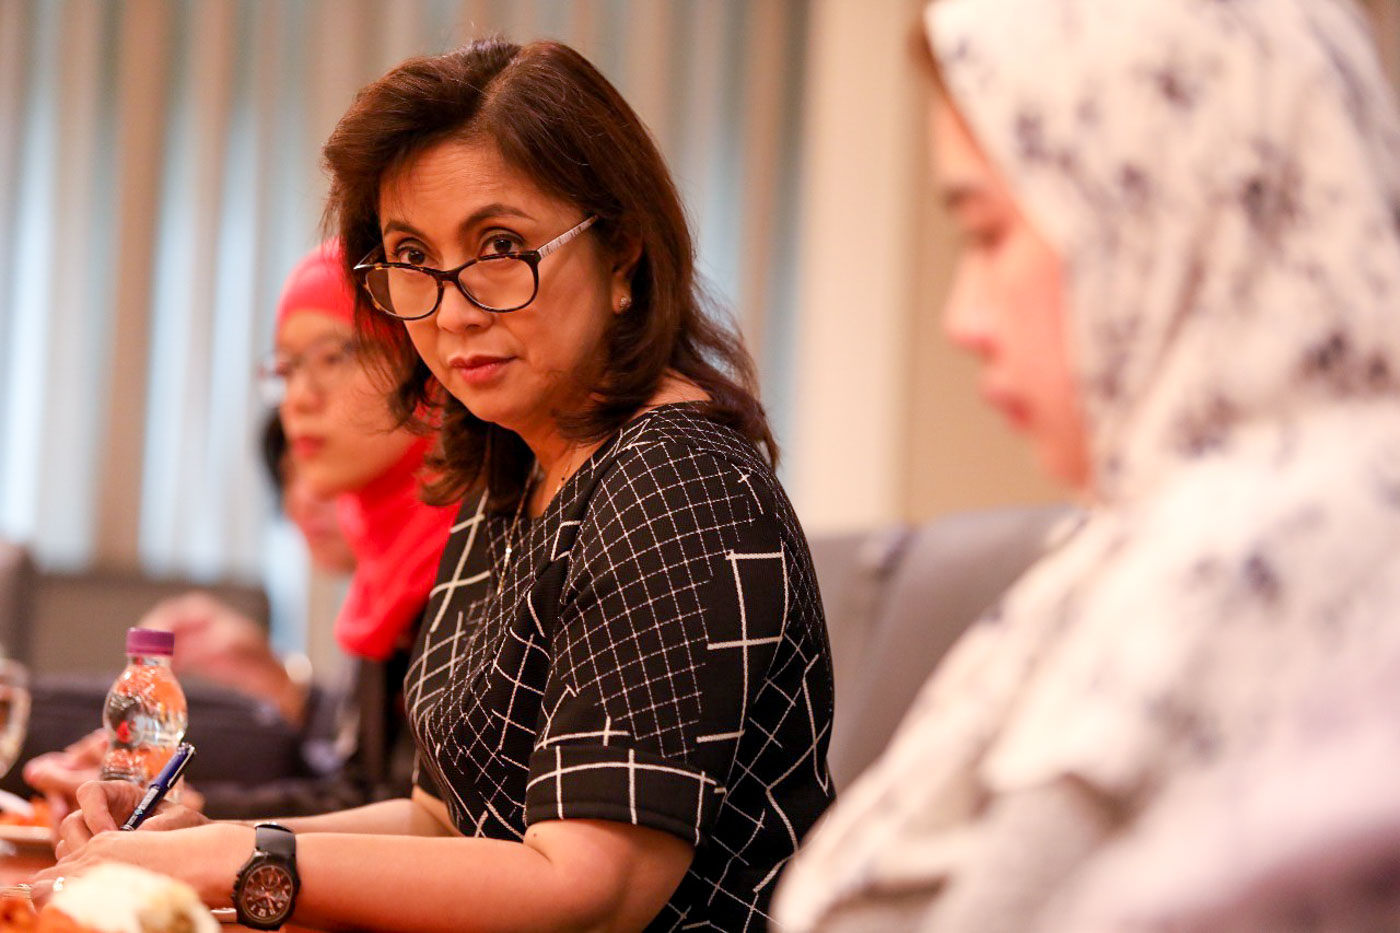 HUMAN RIGHTS LAWYER. Robredo supports the endeavors of the Commission on Human Rights. Photo by OVP